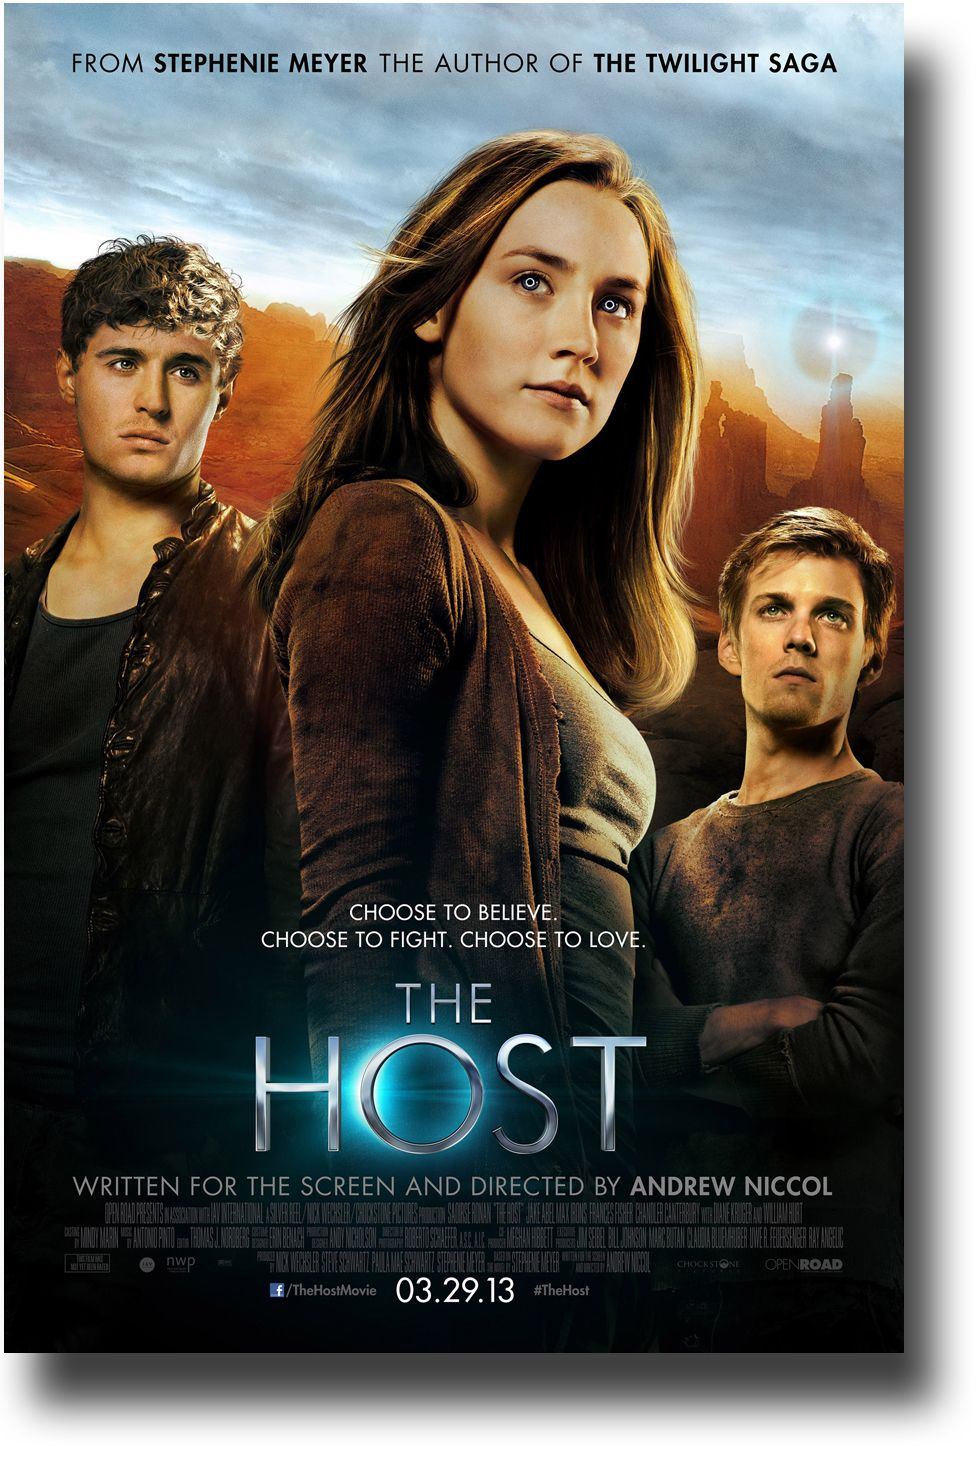 7 28 13 The Host 2 5 5 Stars Full Movies Online Free Free Movies Online I Movie